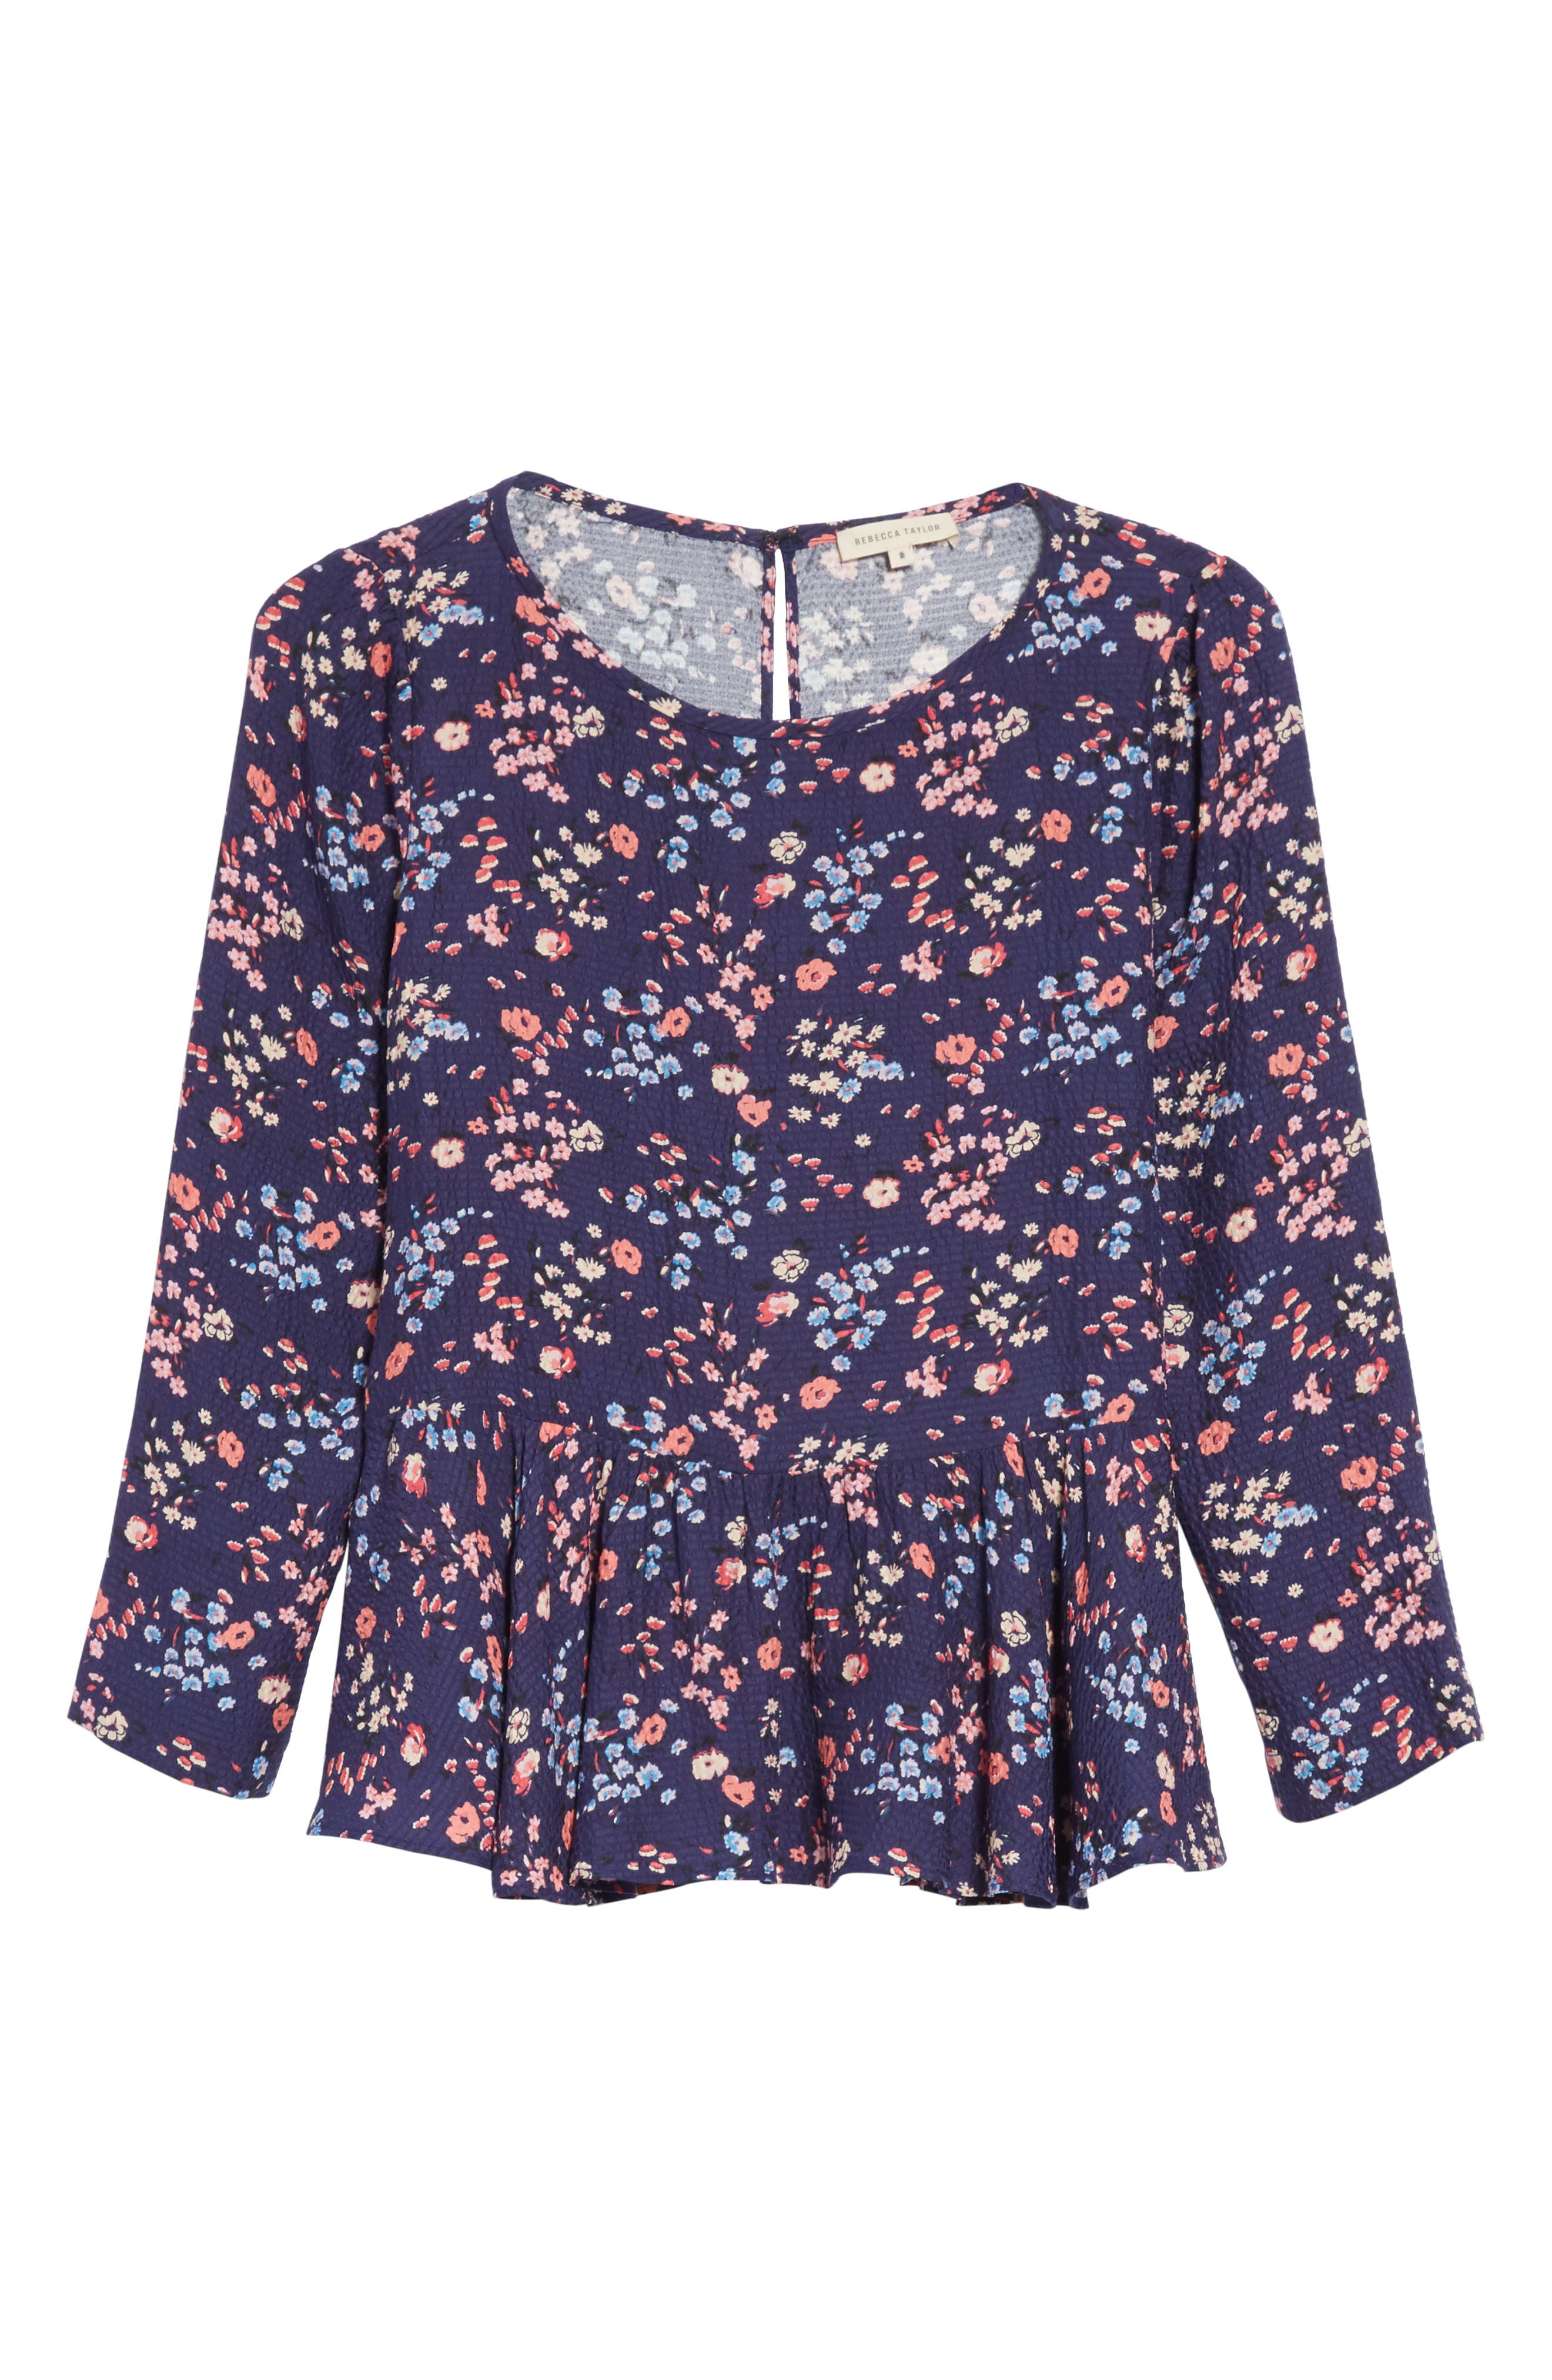 Woodland Floral Print Silk Top,                             Alternate thumbnail 6, color,                             Deep Violet Combo